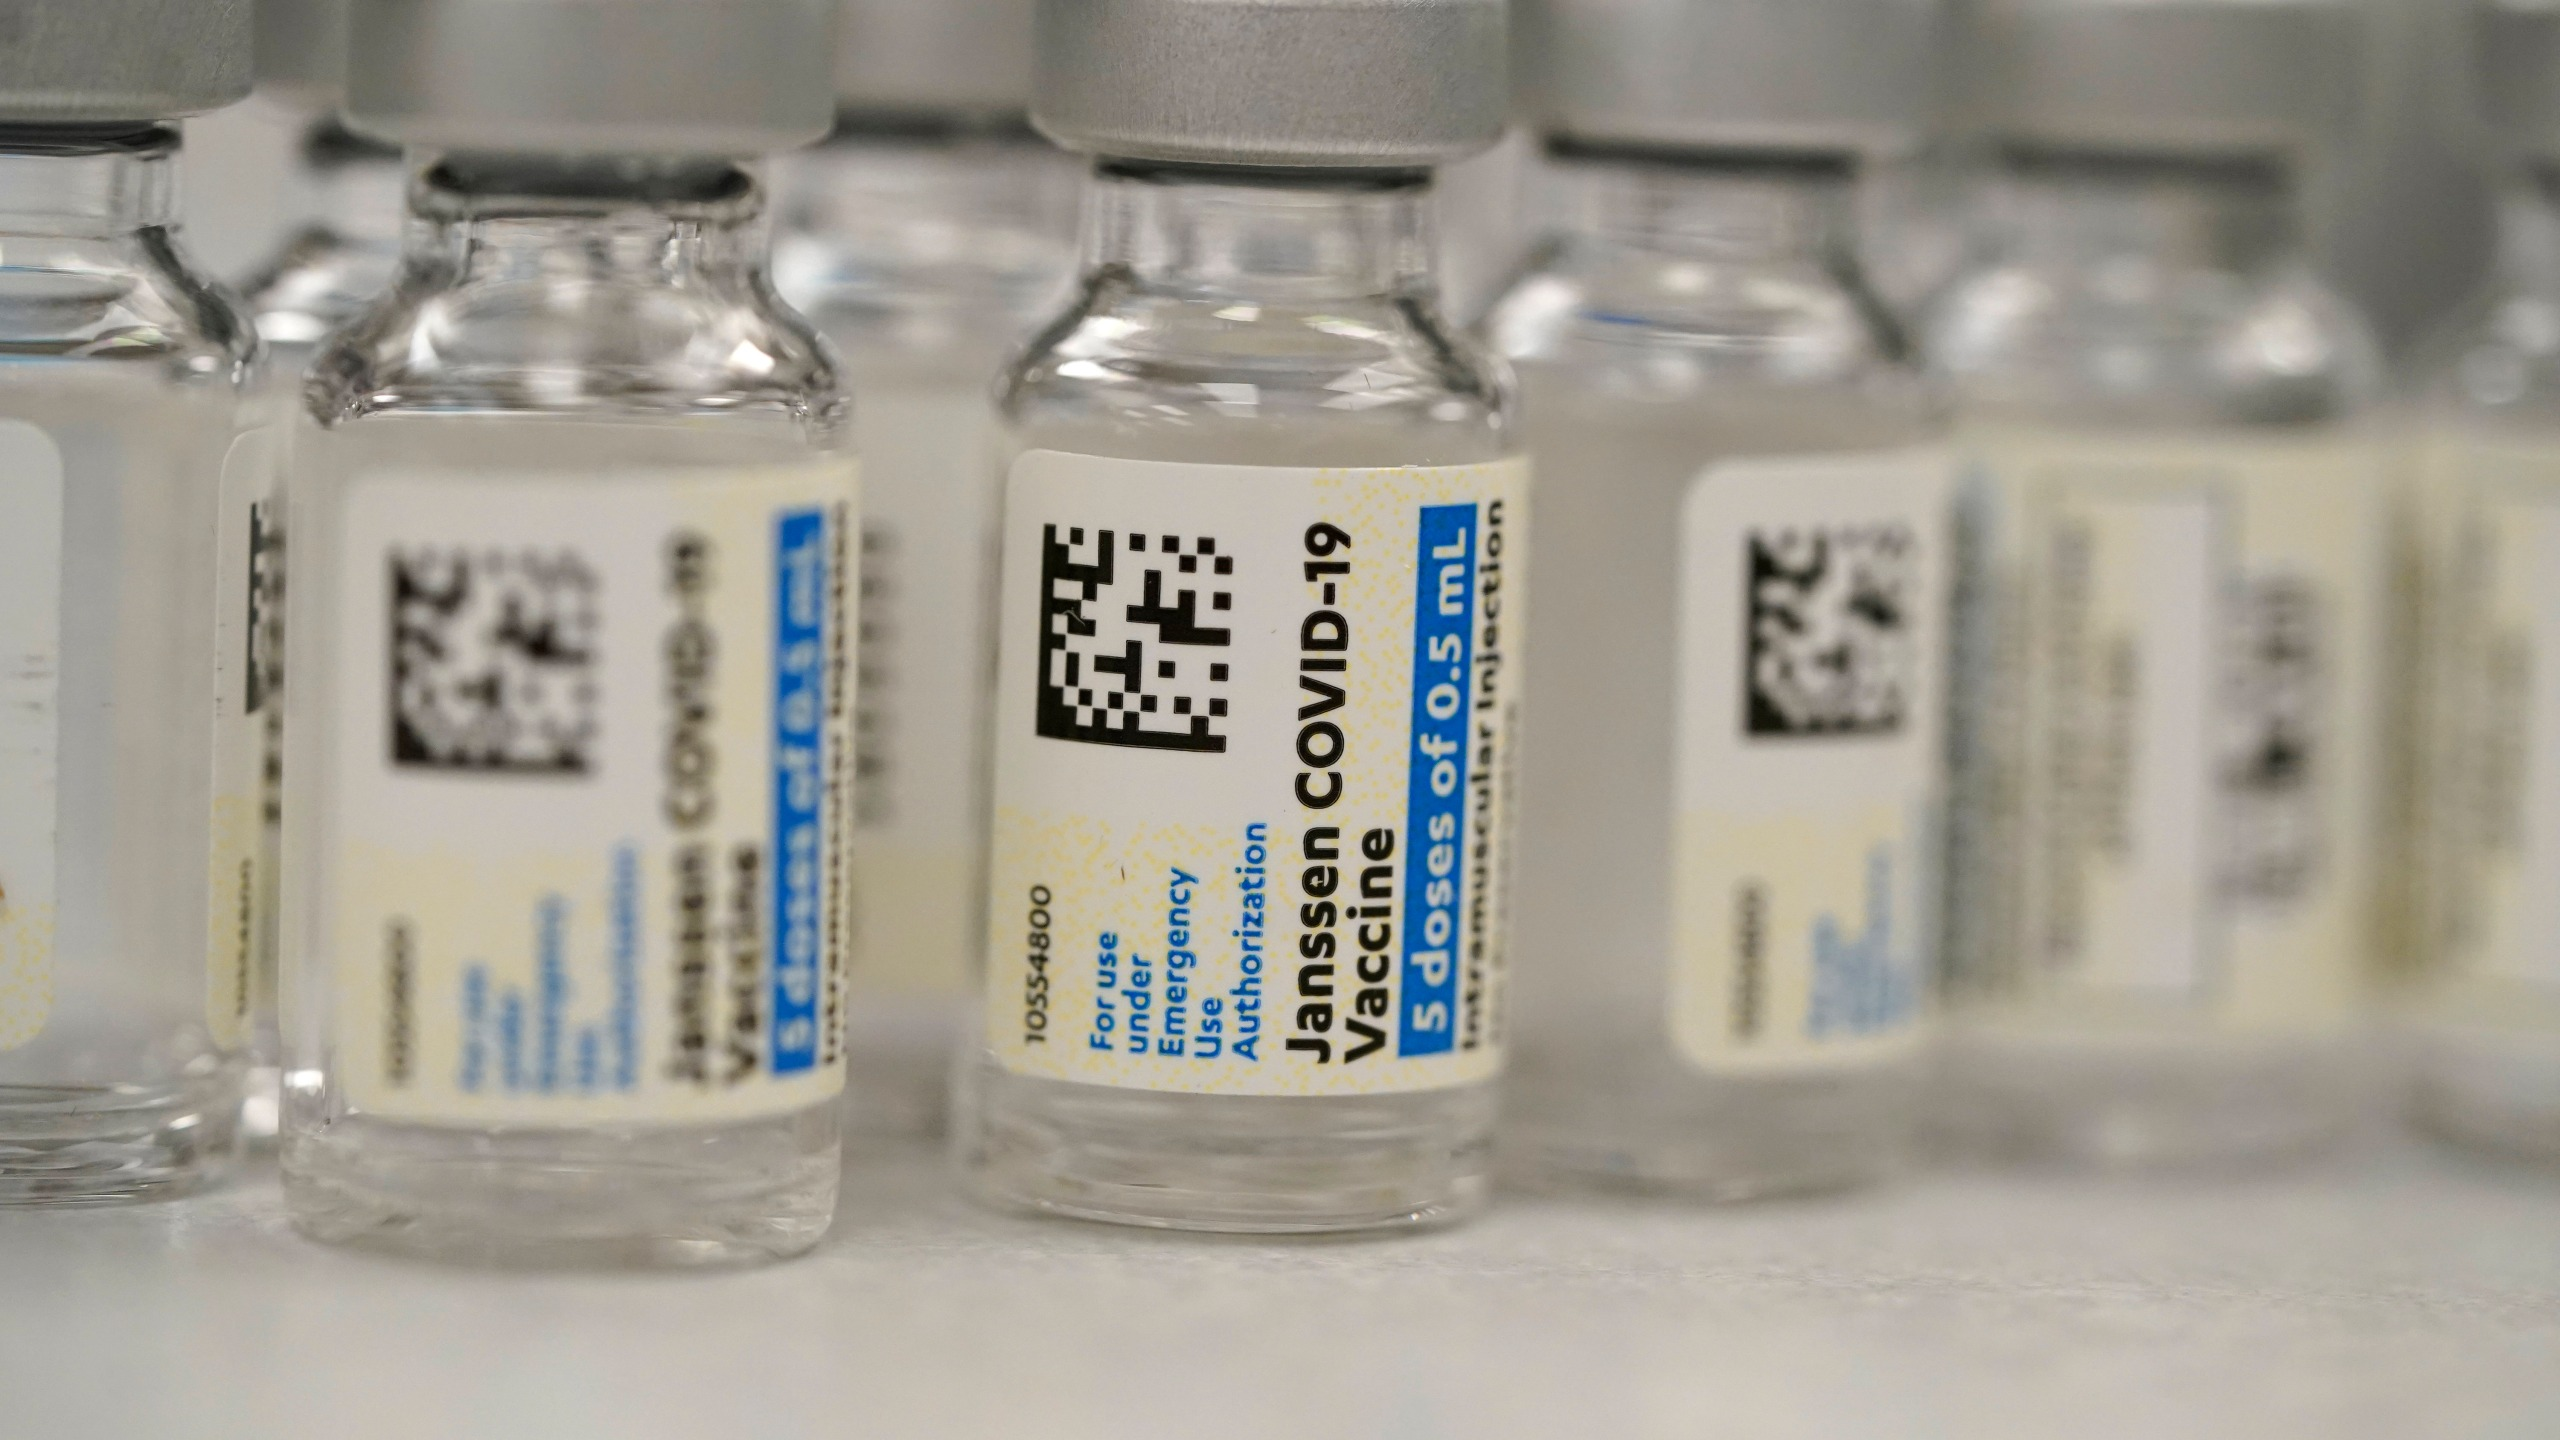 FILE - This Saturday, March 6, 2021 file photo shows vials of Johnson & Johnson COVID-19 vaccine in the pharmacy of National Jewish Hospital for distribution in east Denver. (AP Photo/David Zalubowski, File)